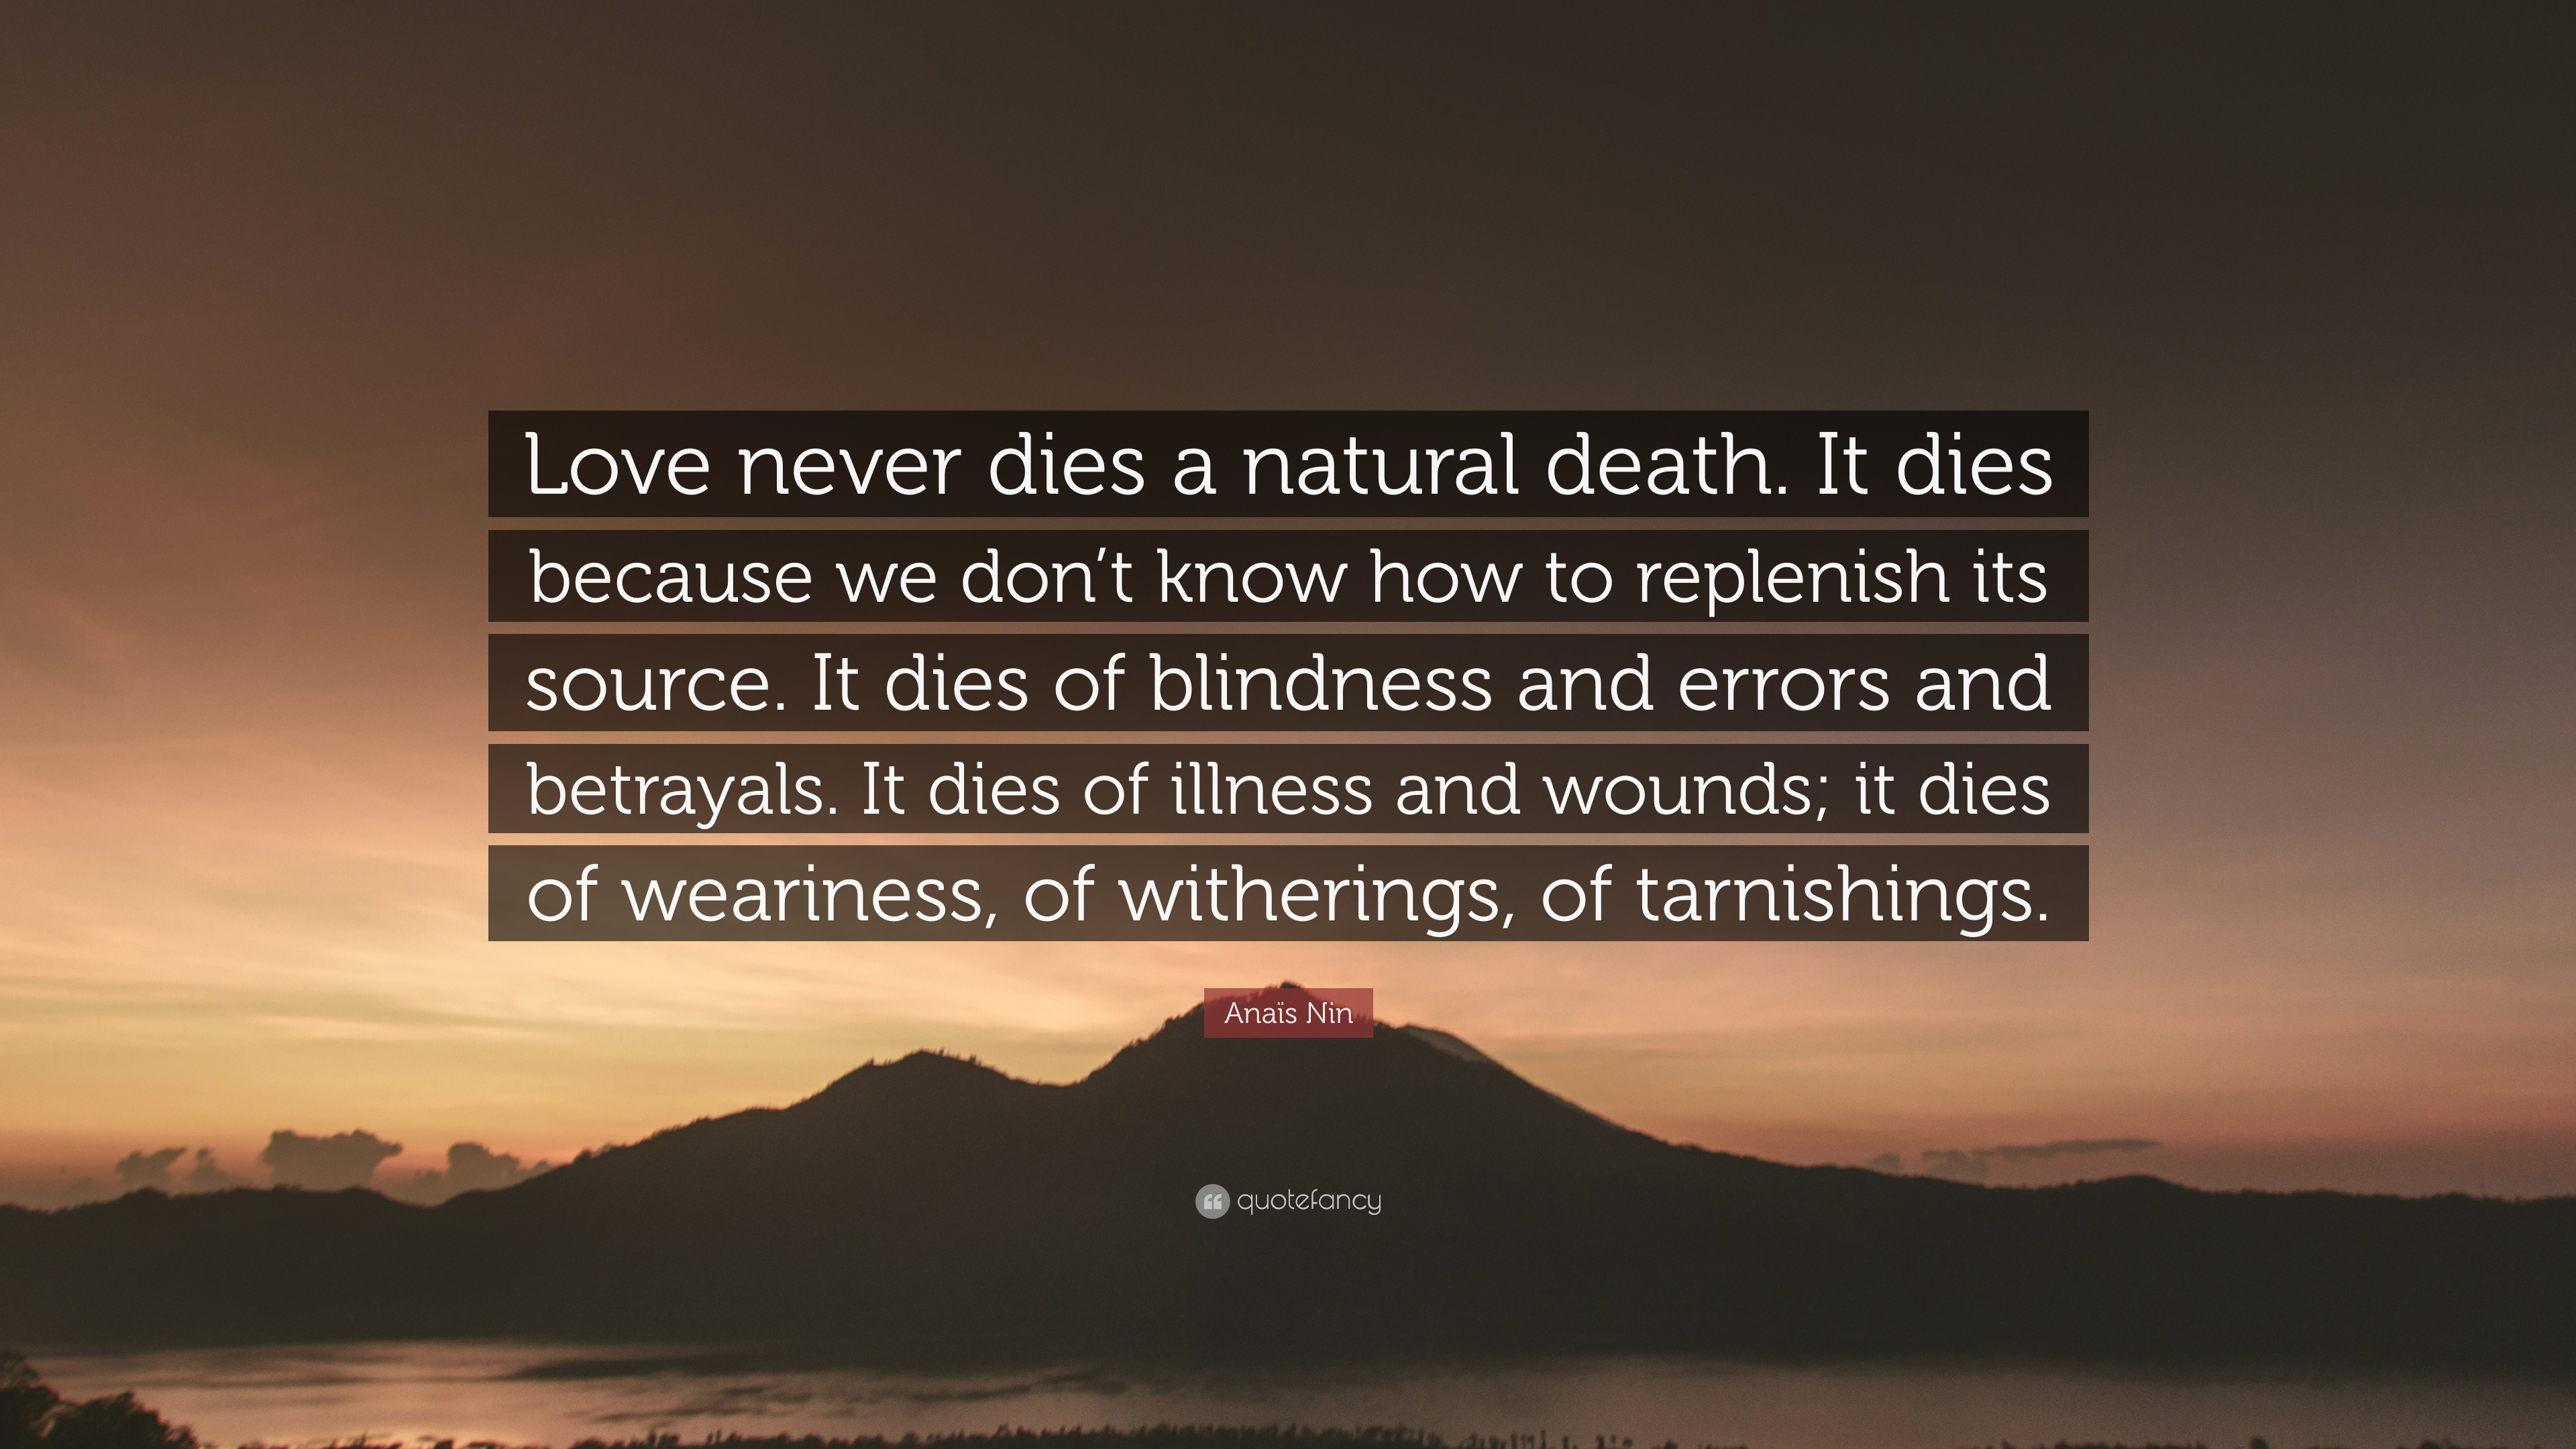 Love Never Dies Quotes Wallpaper : Ana?s Nin Quote: ?Love never dies a natural death. It dies because we don t know how to ...